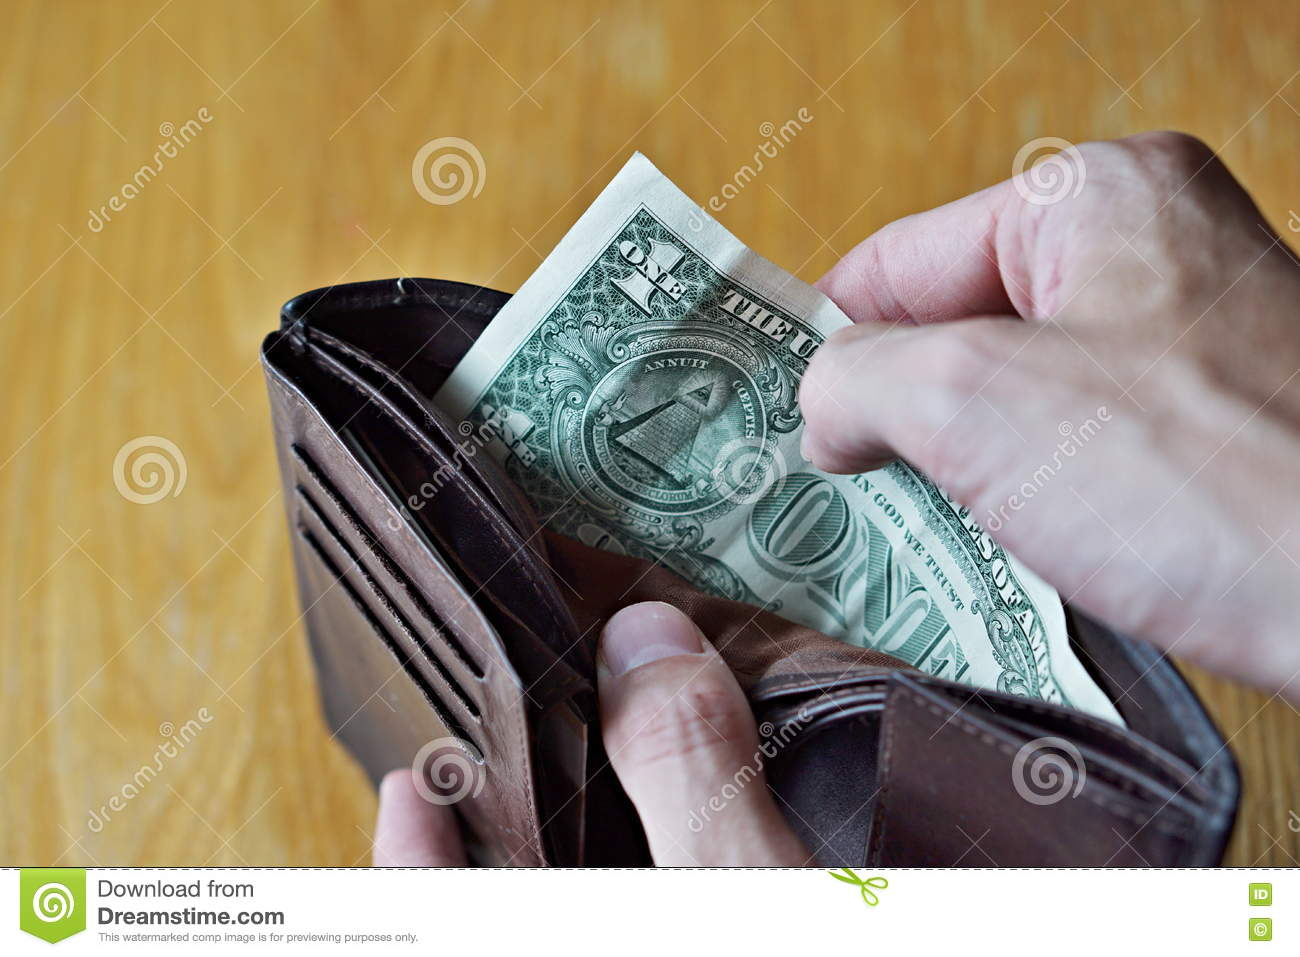 Male hands opening an almost empty leather wallet with only one American dollar (One USD, US dollar) as a symbol of modern poor pe